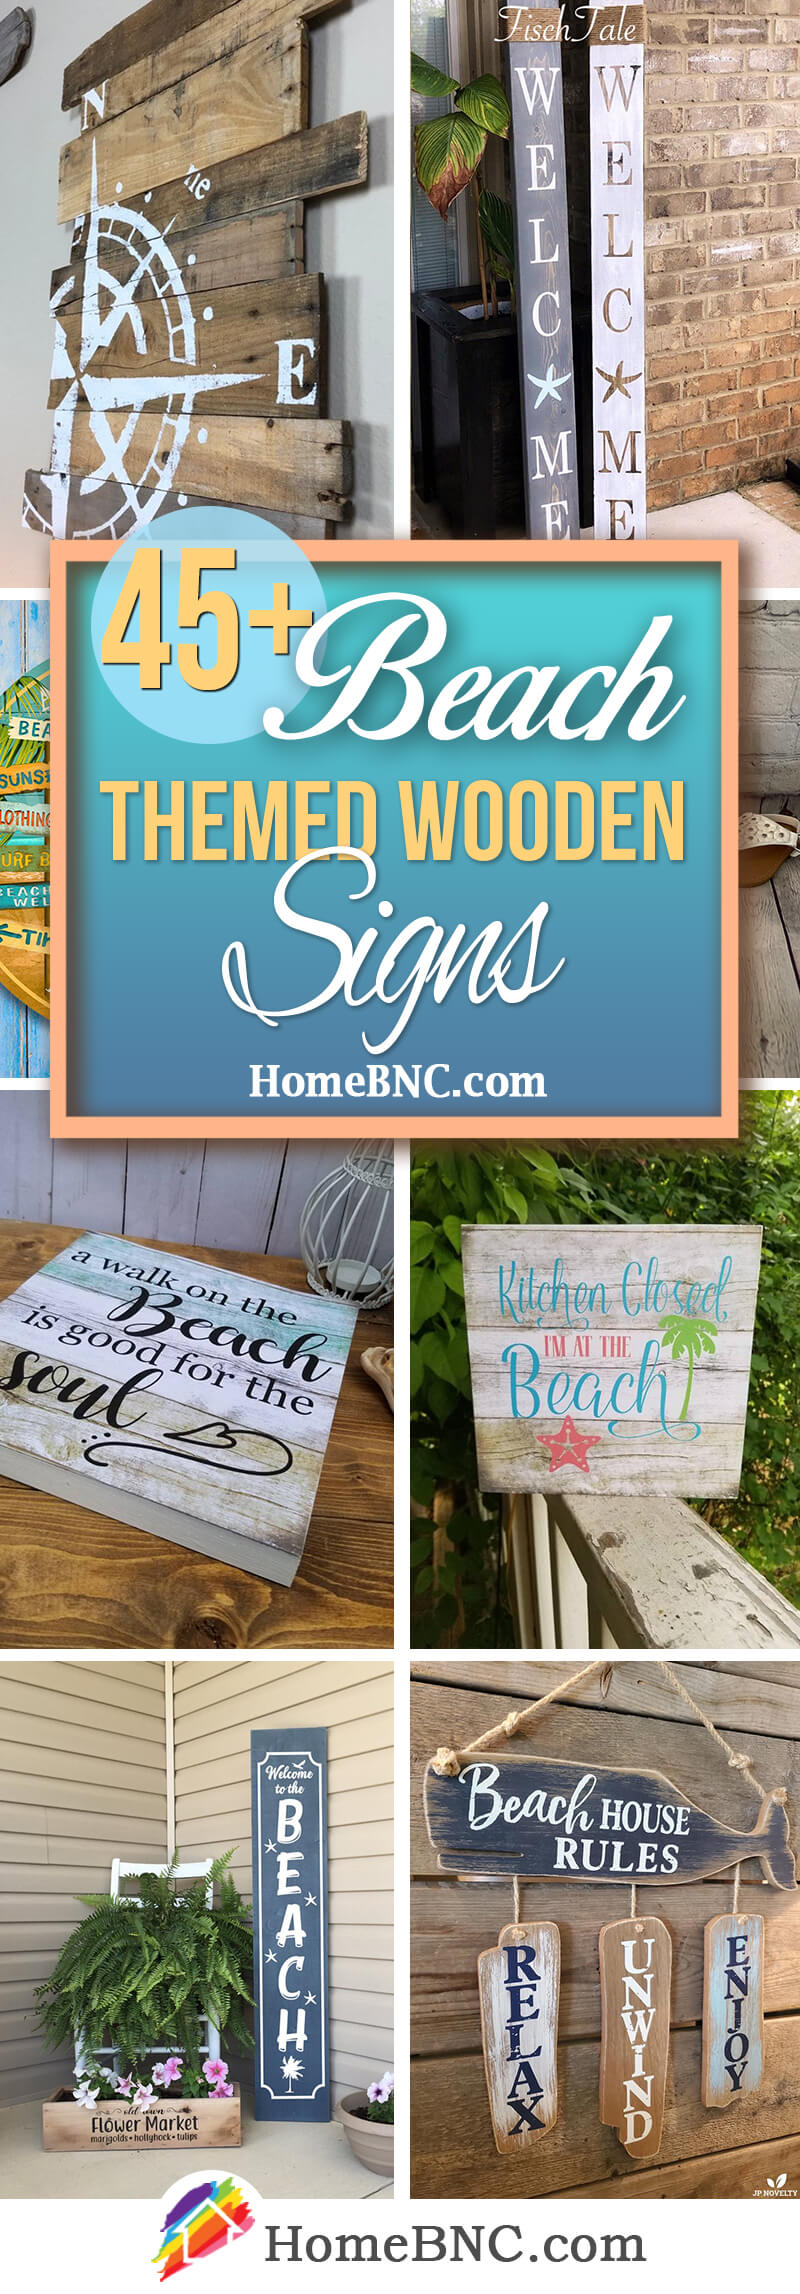 Beach Themed Wooden Signs